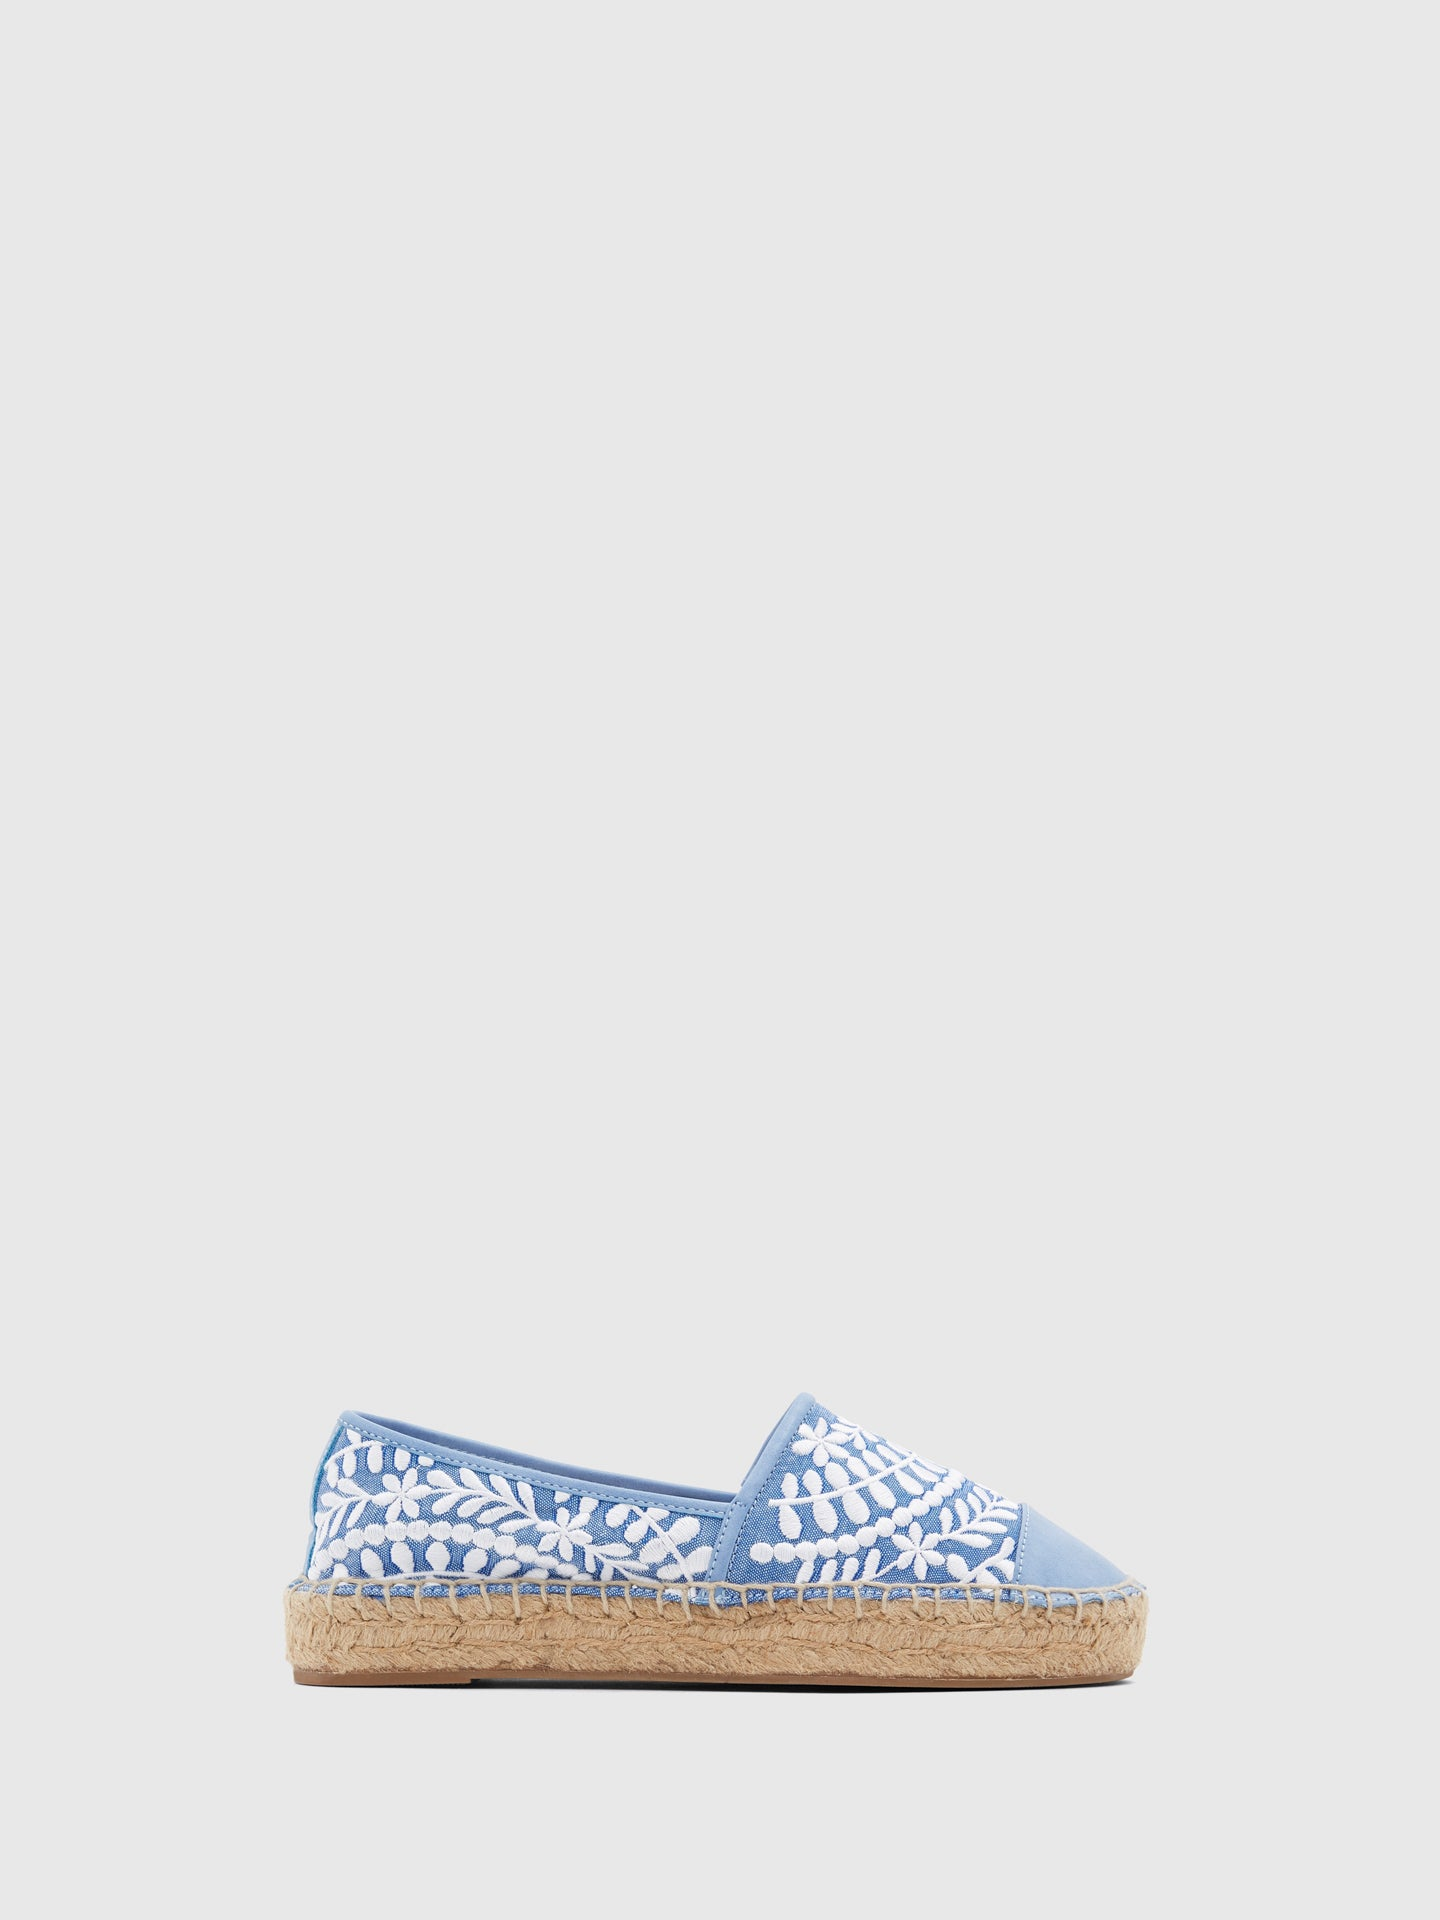 Aldo Blue White Embroidered Espadrilles